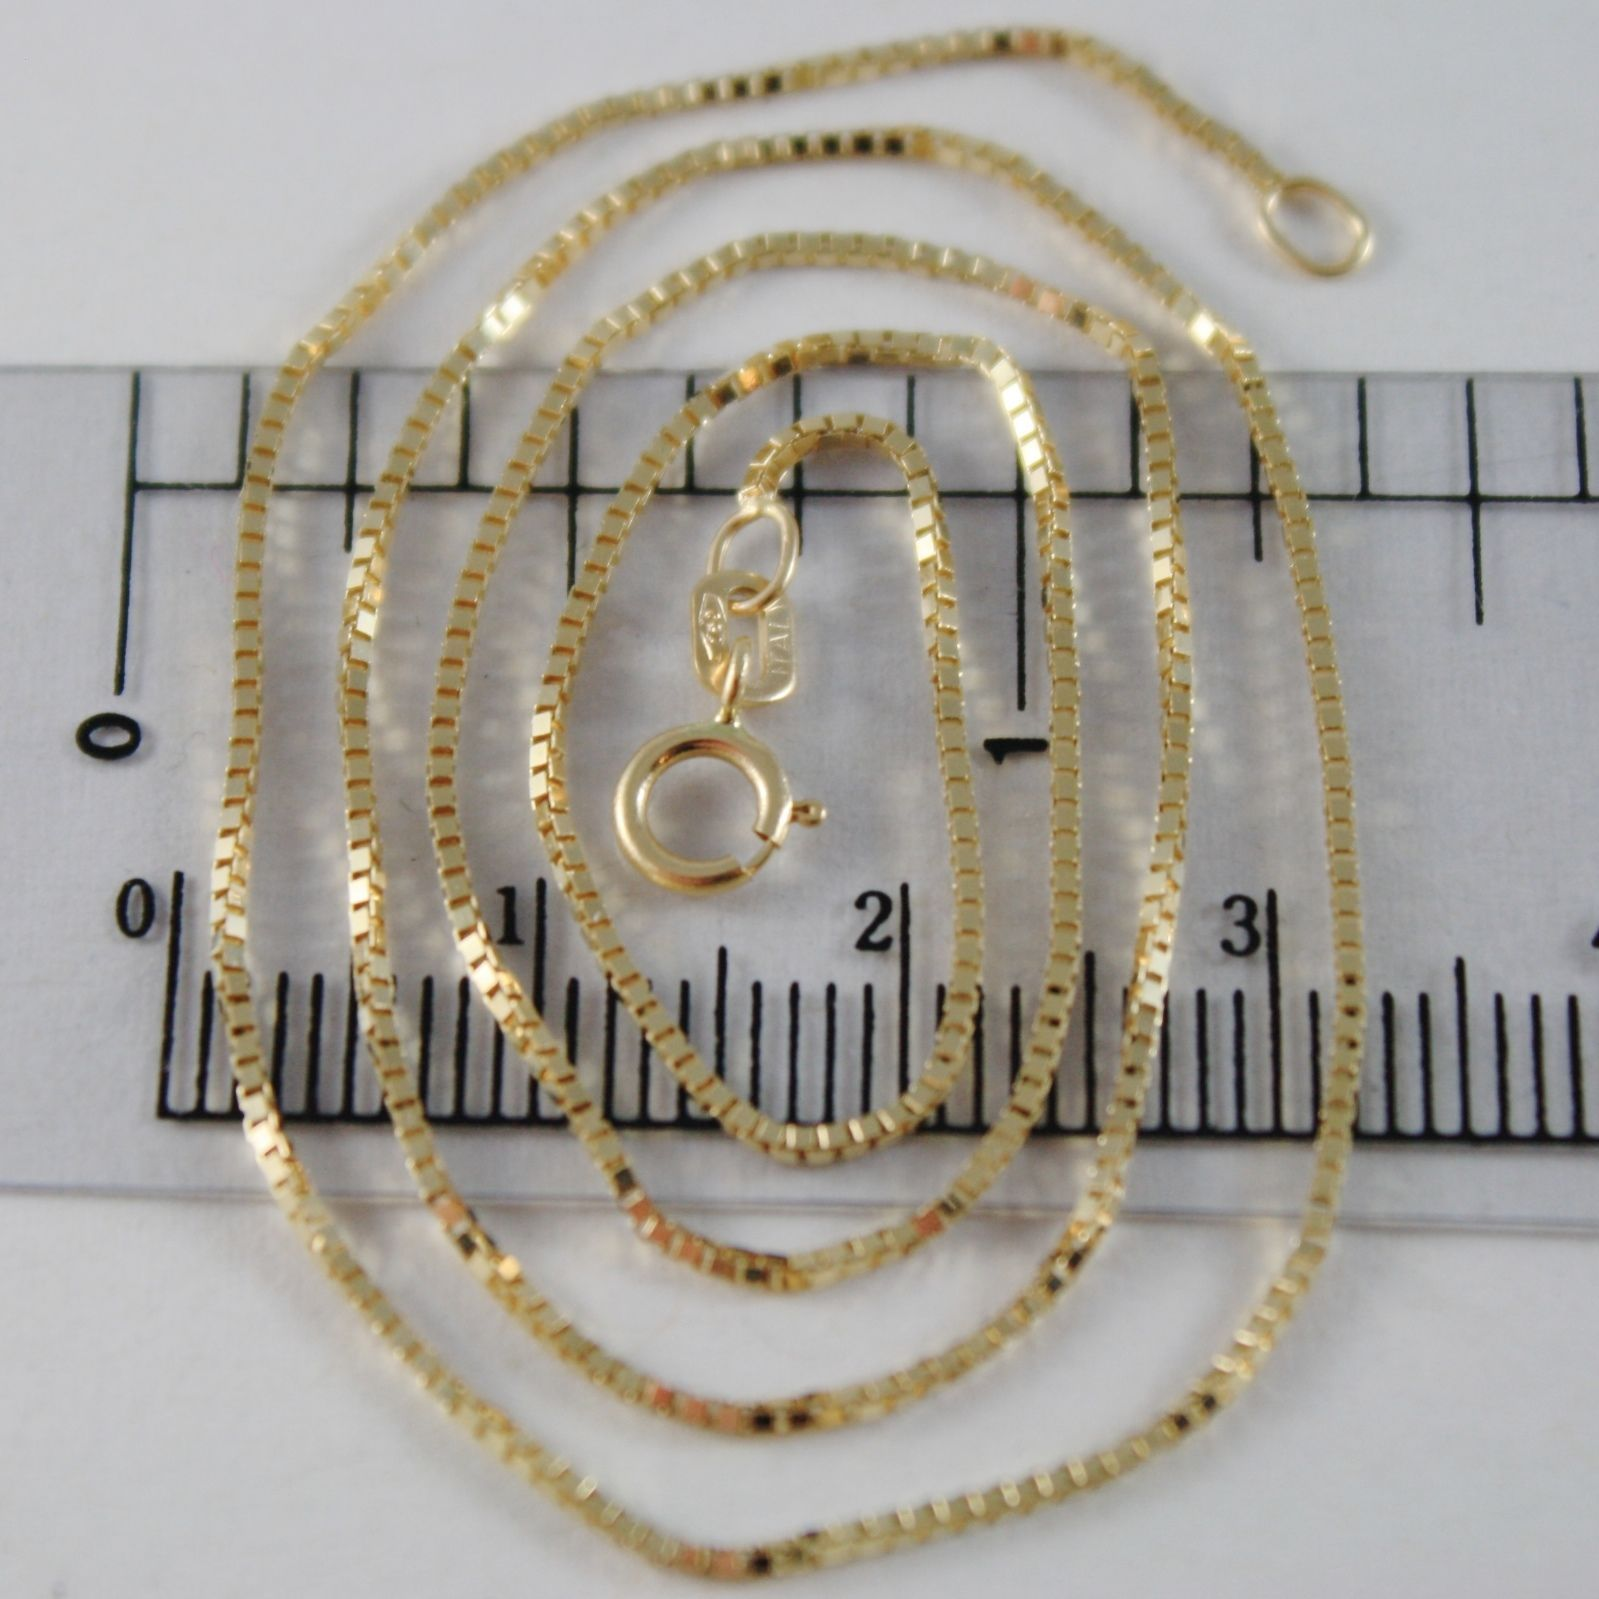 18K YELLOW GOLD CHAIN 1 MM VENETIAN SQUARE MESH 15.75 INCHES, MADE IN ITALY